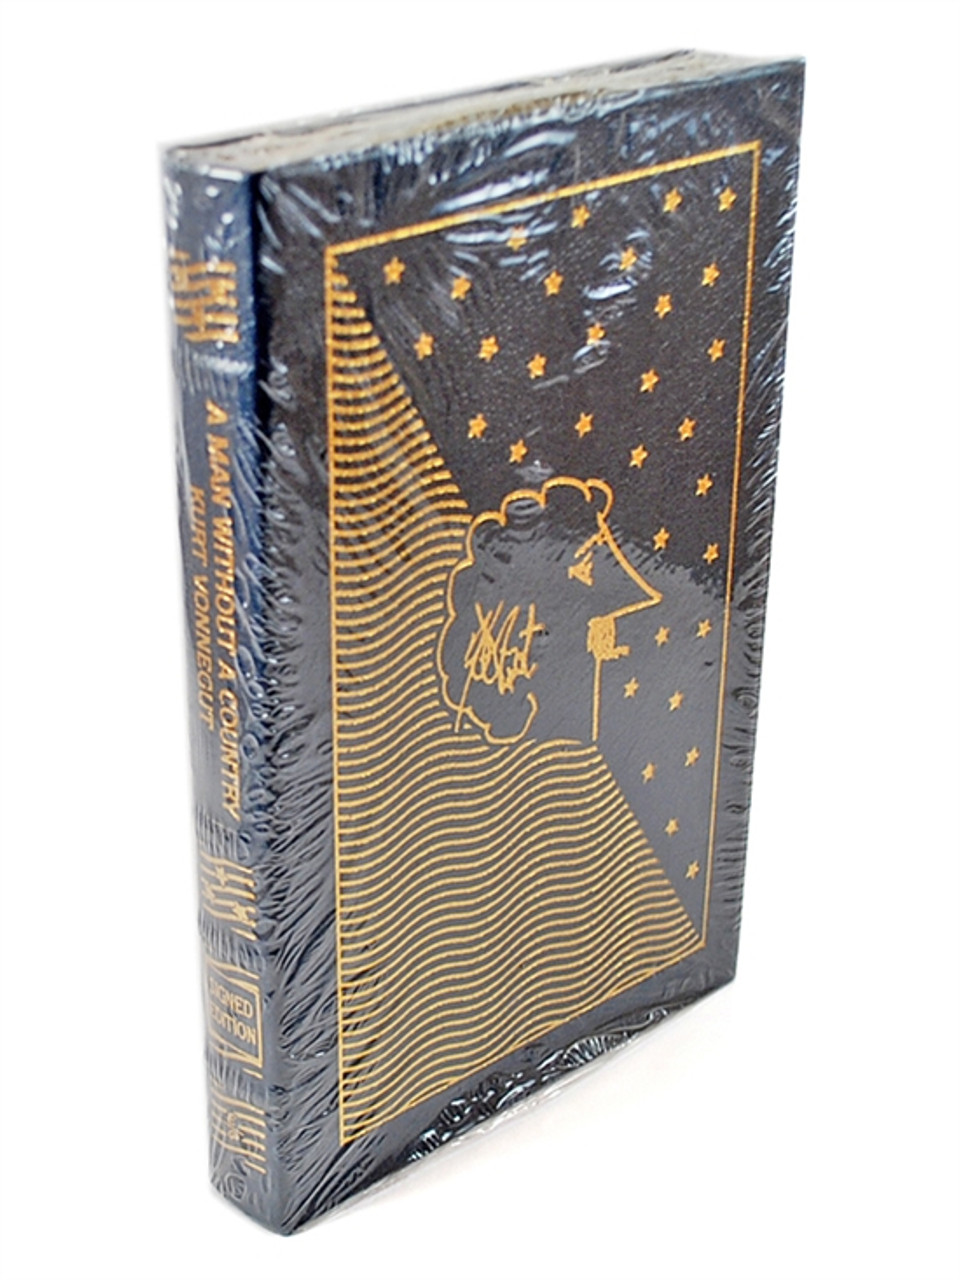 Signed by Kurt Vonnegut Man Without Country Easton Press